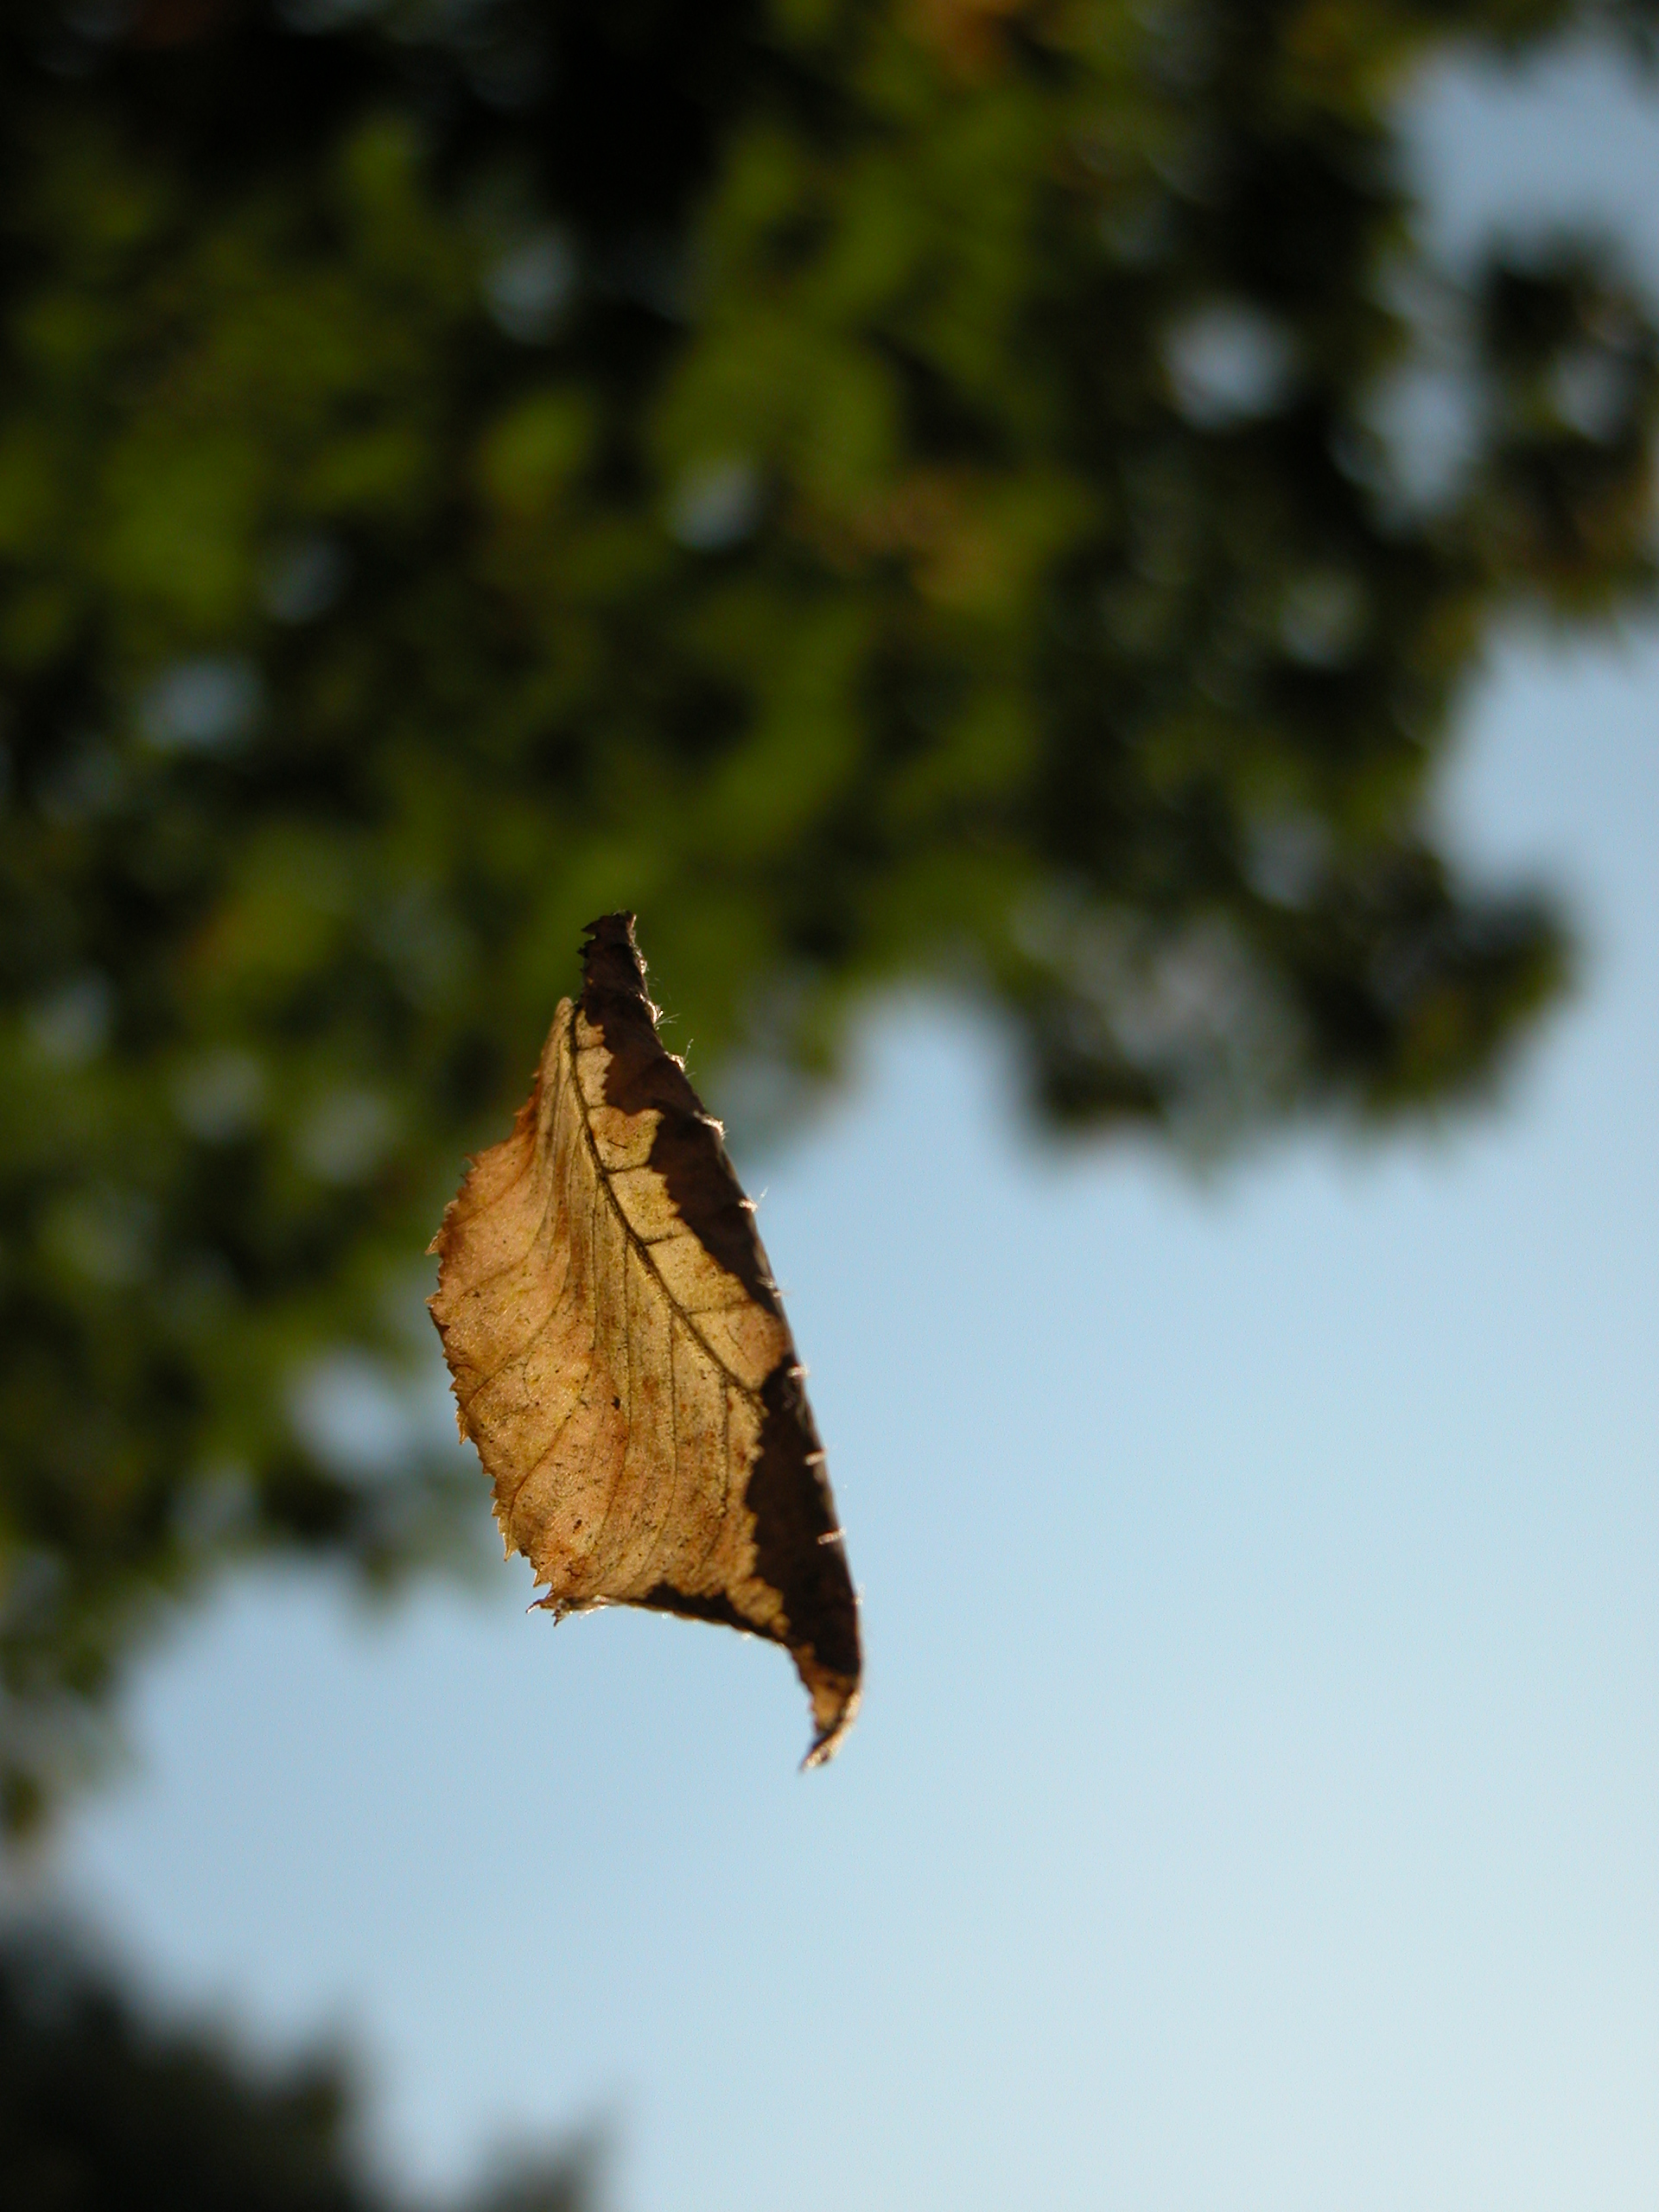 leaf hanging suspended in mid air by a spider silk wire